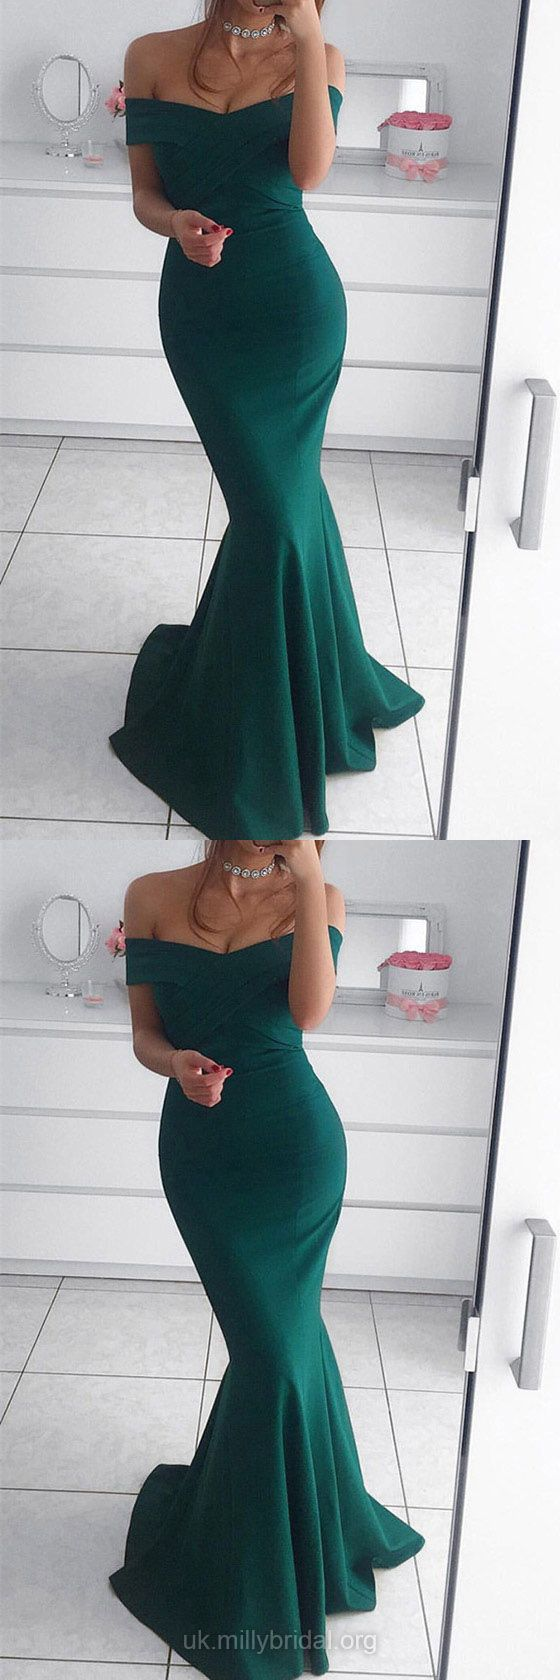 Green prom dresses long prom dresses sexy prom dresses silklike